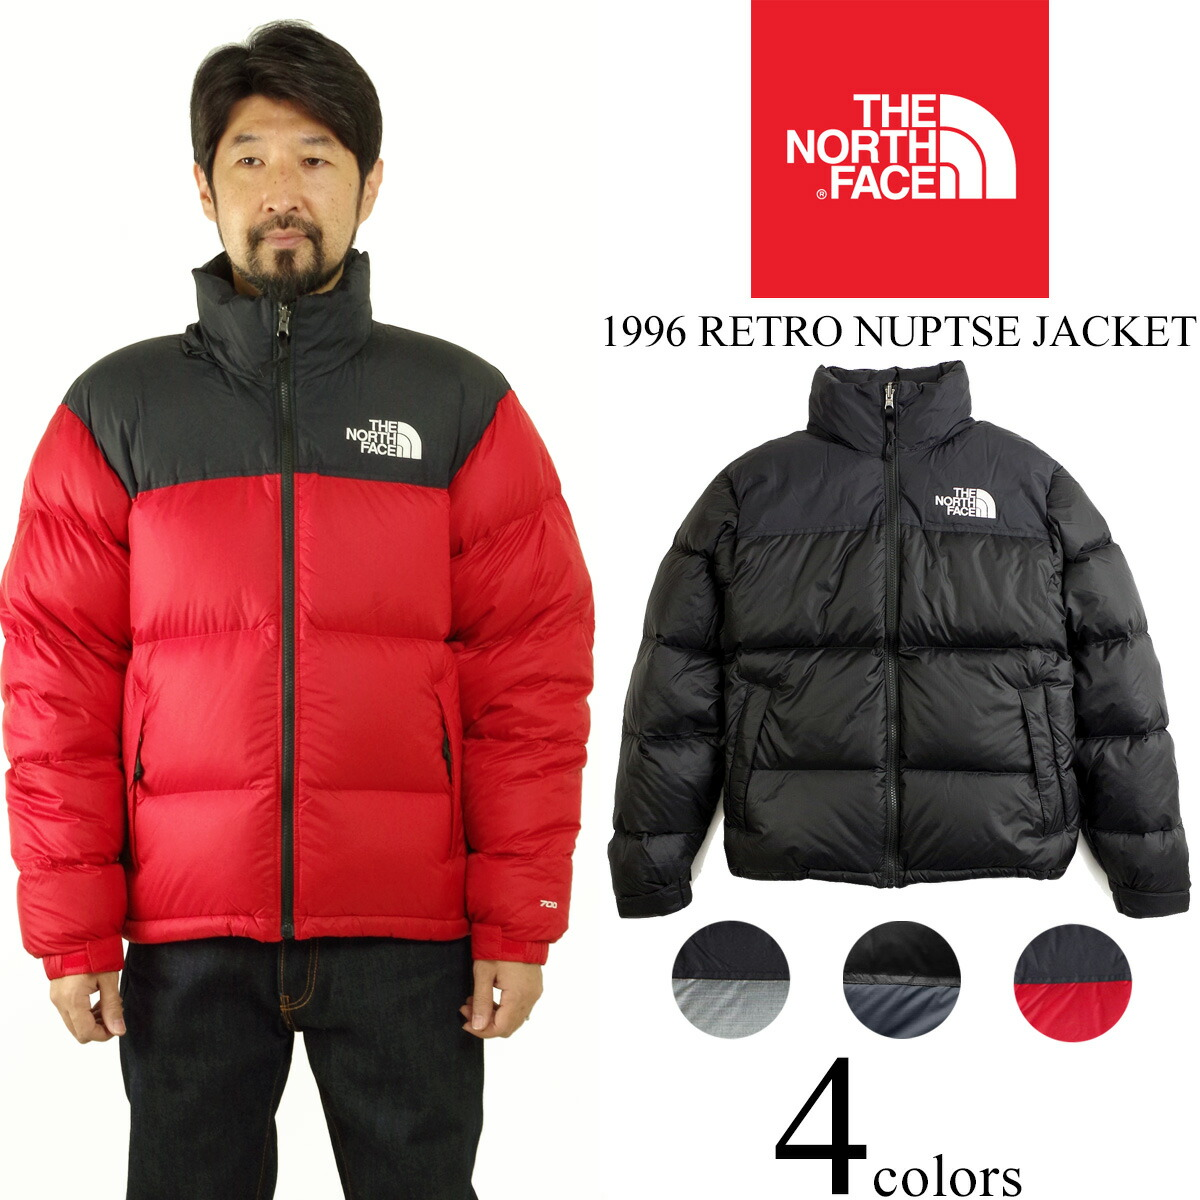 671285d210 Jalana  North Face THE NORTH FACE 1996 レトロヌプシジャケット (non ...